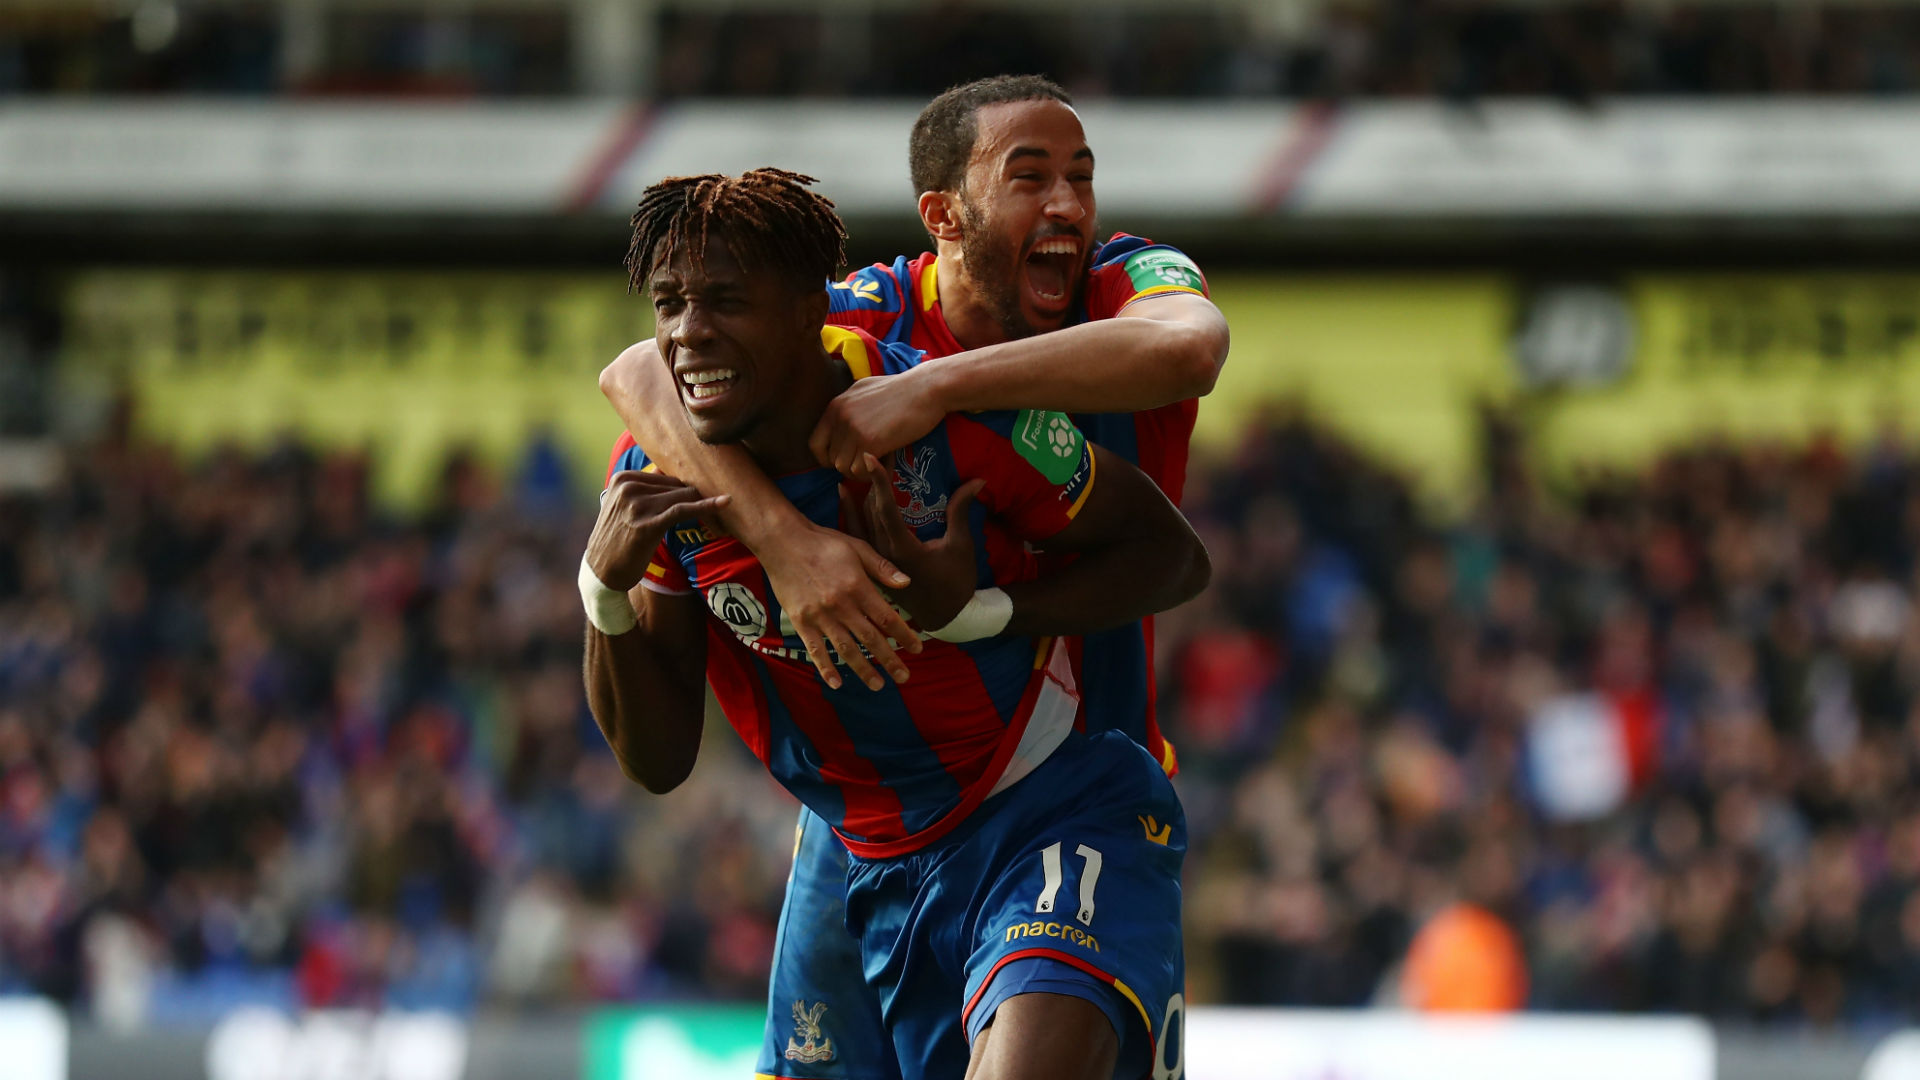 Zaha's matchwinner could be Crystal Palace's turning point - Andros Townsend